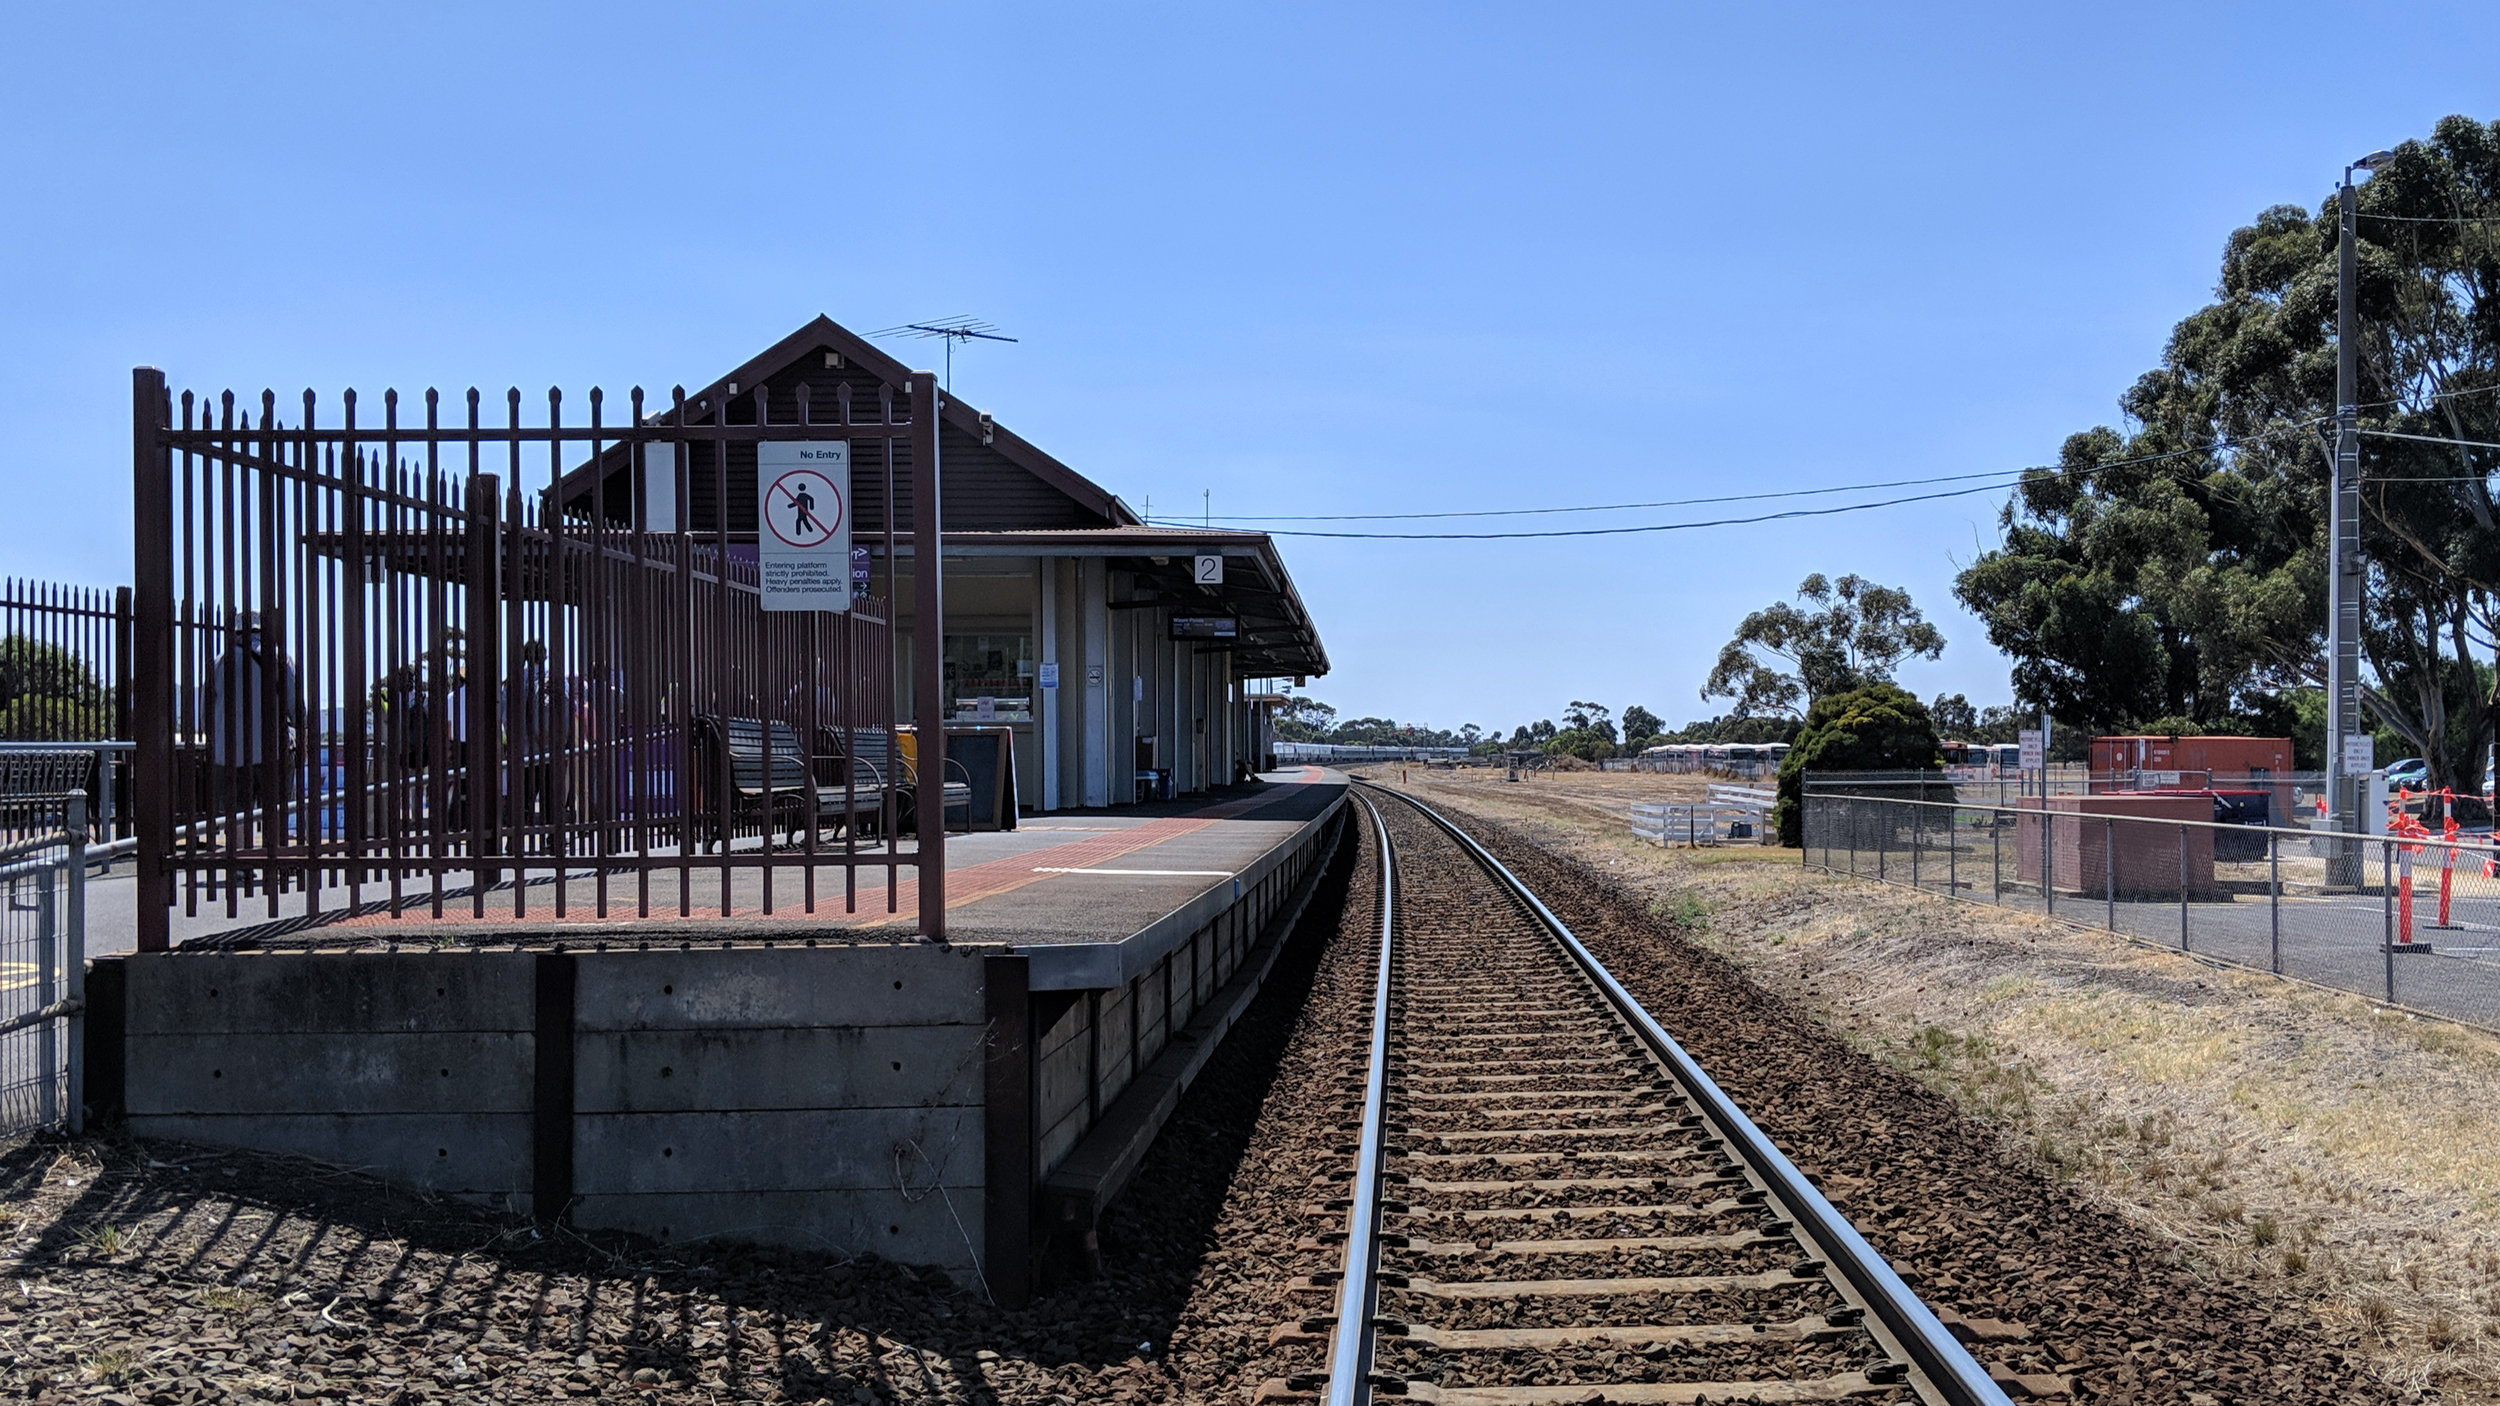 Walking into Lara railway station.